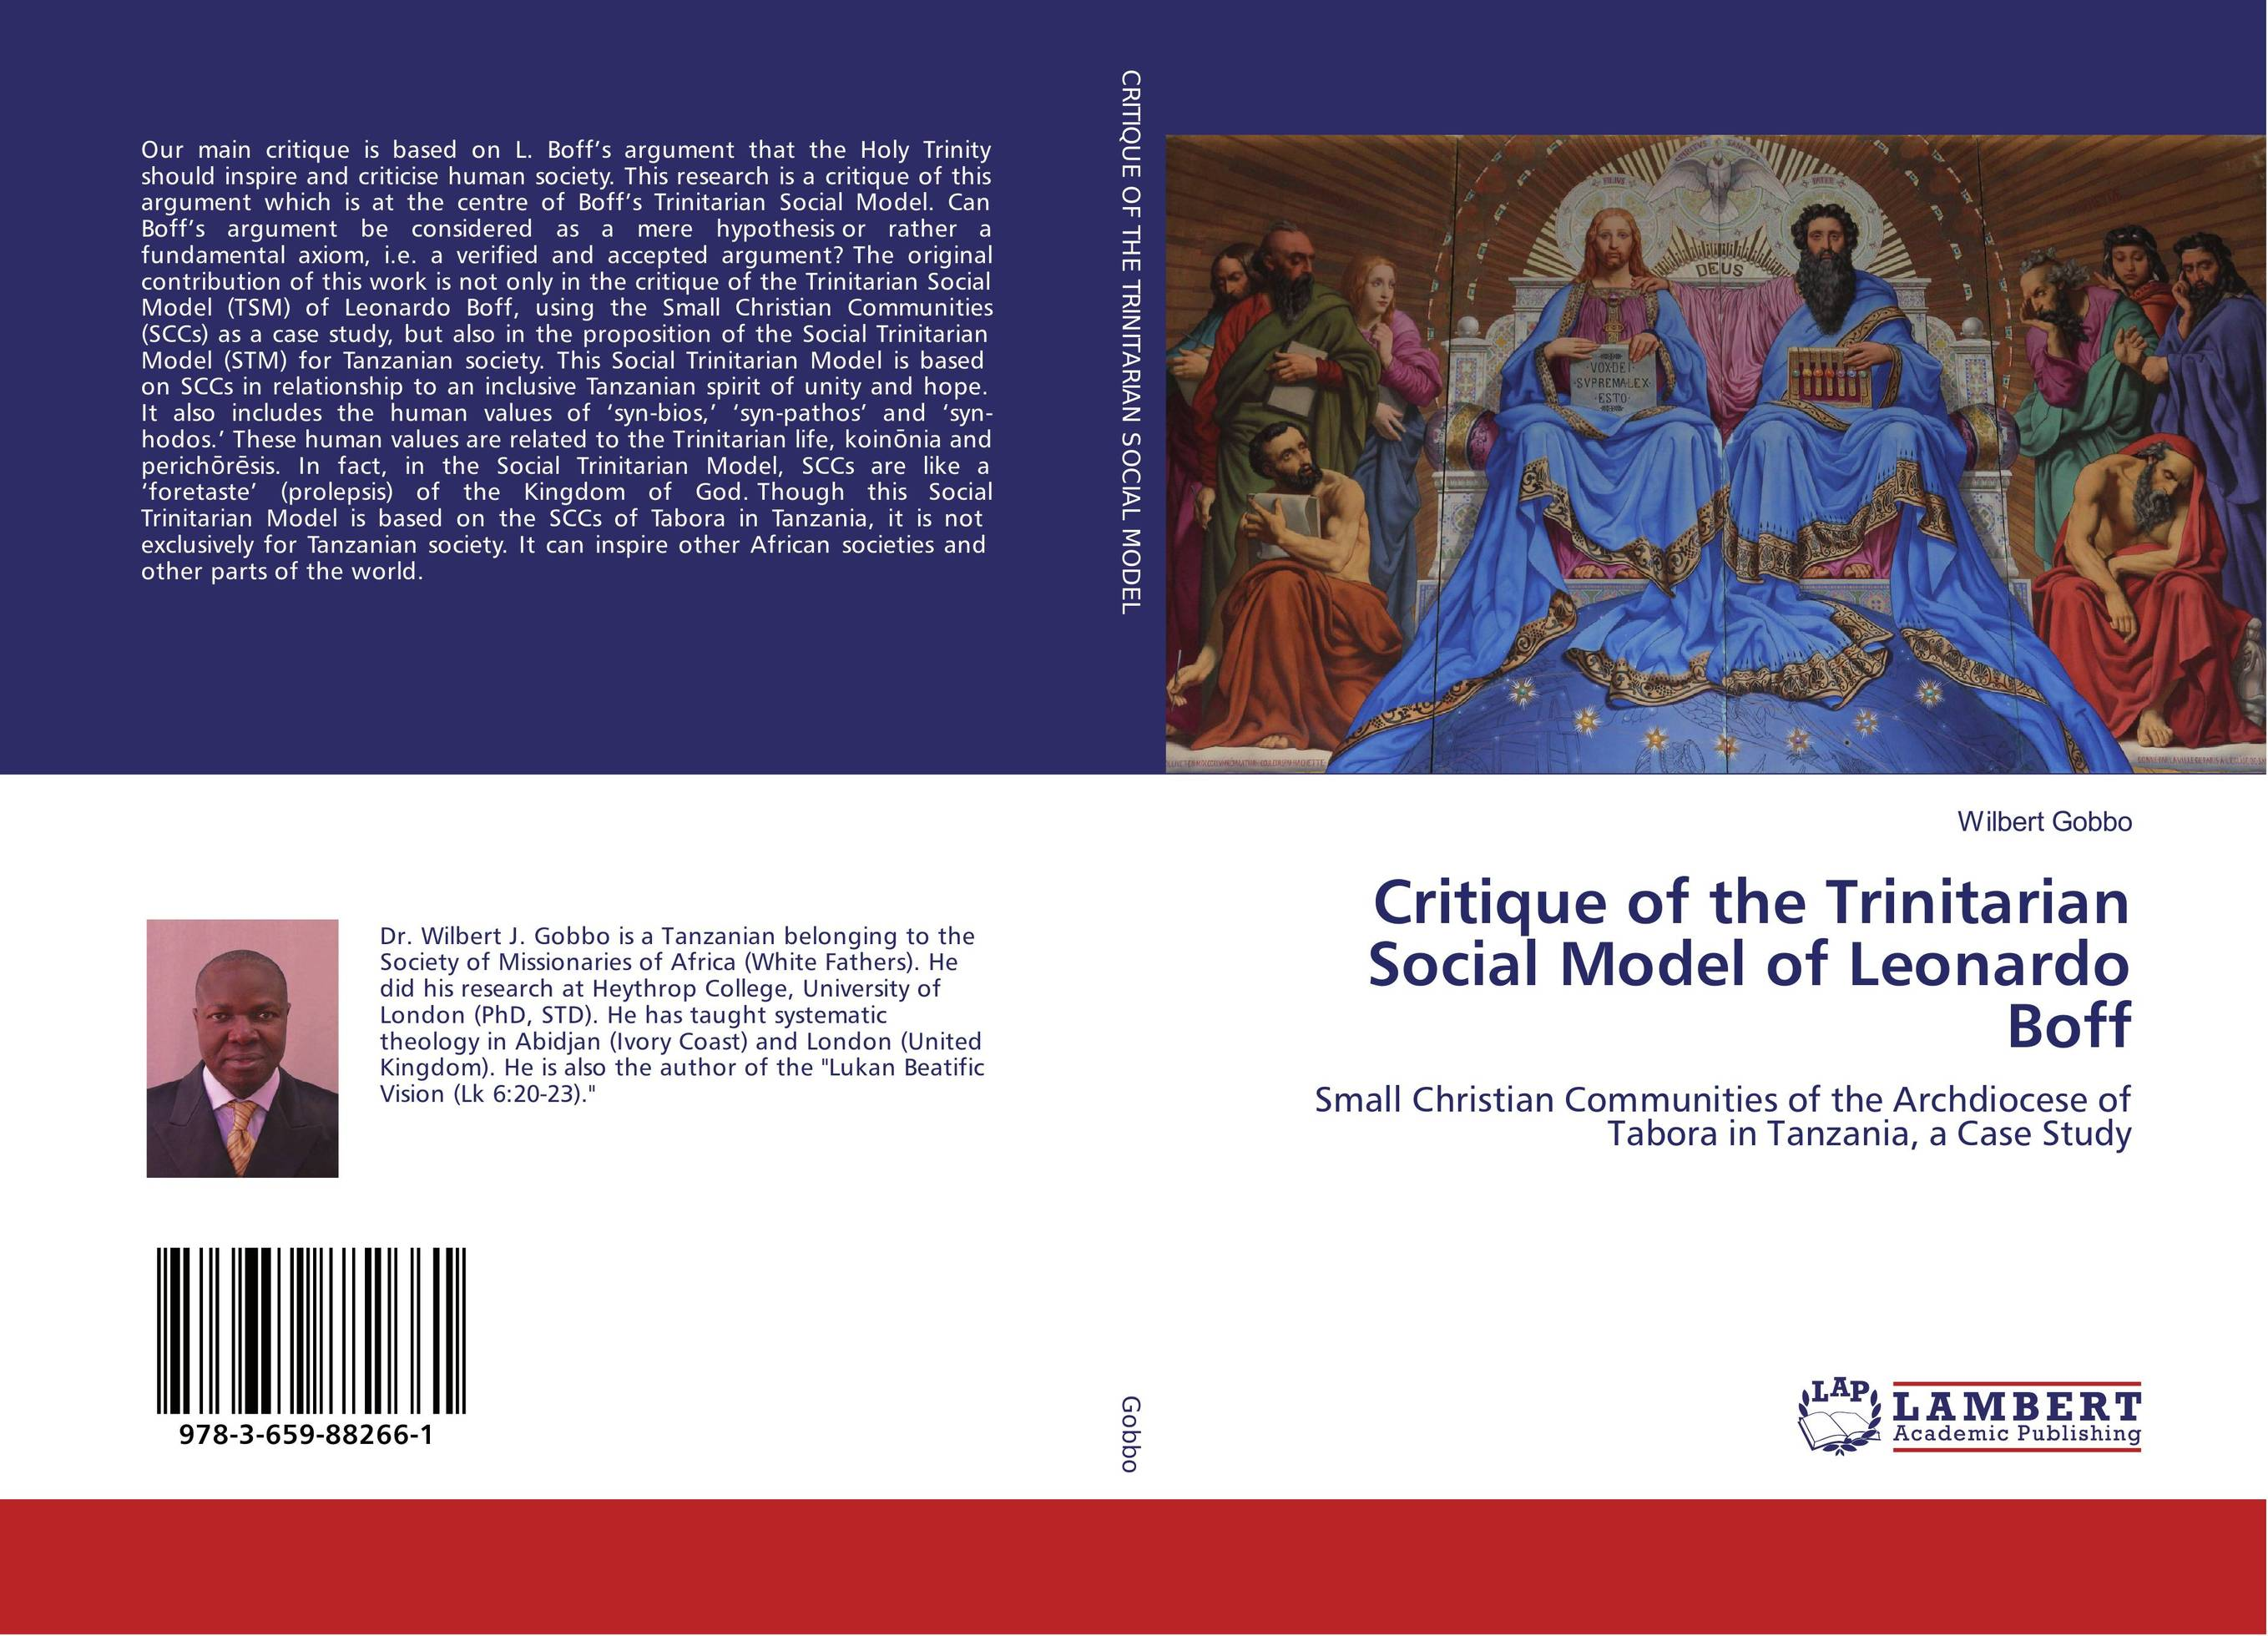 Critique of the Trinitarian Social Model of Leonardo Boff